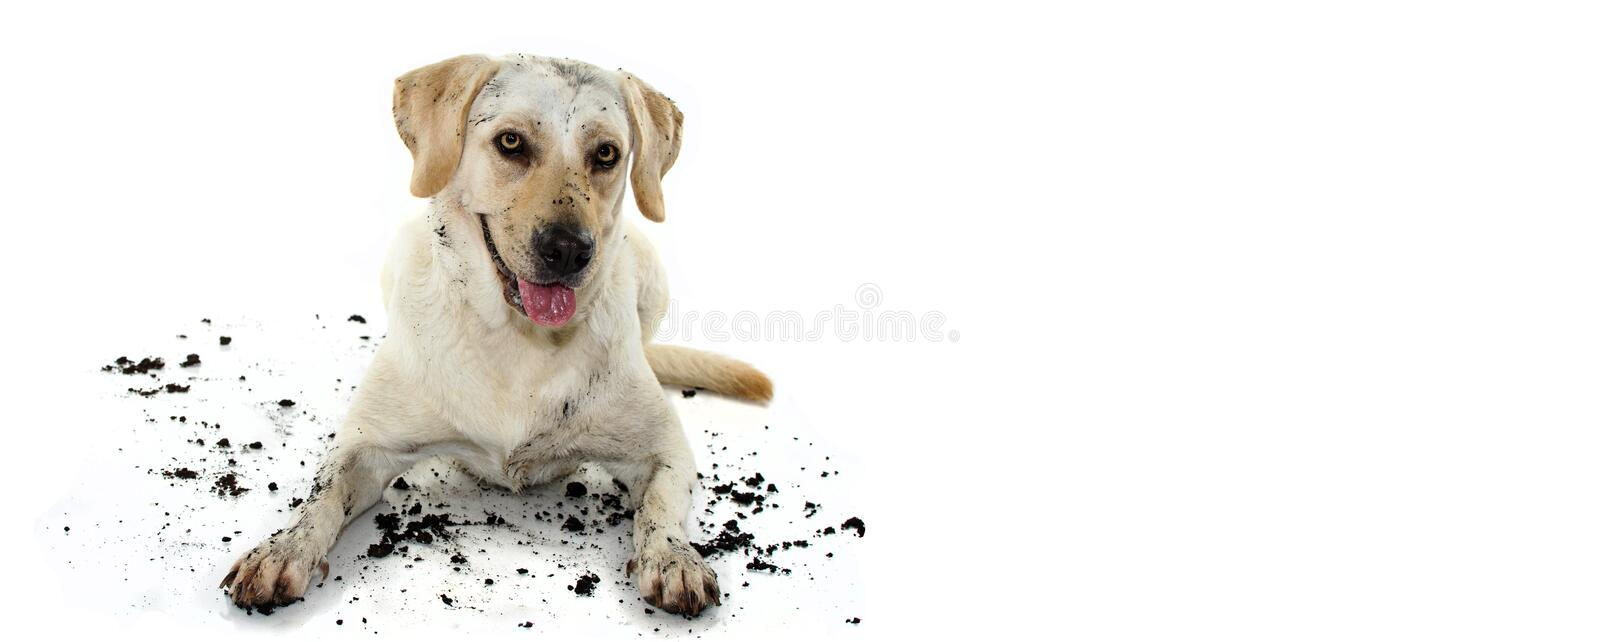 FUNNY DIRTY MIXEDBRED GOLDEN OR LABRADOR RETRIEVER AND MASTIFF DOG, AFTER PLAY IN A MUD PUDDLE, MAKING GUILTY FACE. ISOLATED. AGAINST WHITE BACKGROUND. STUDIO royalty free stock photos